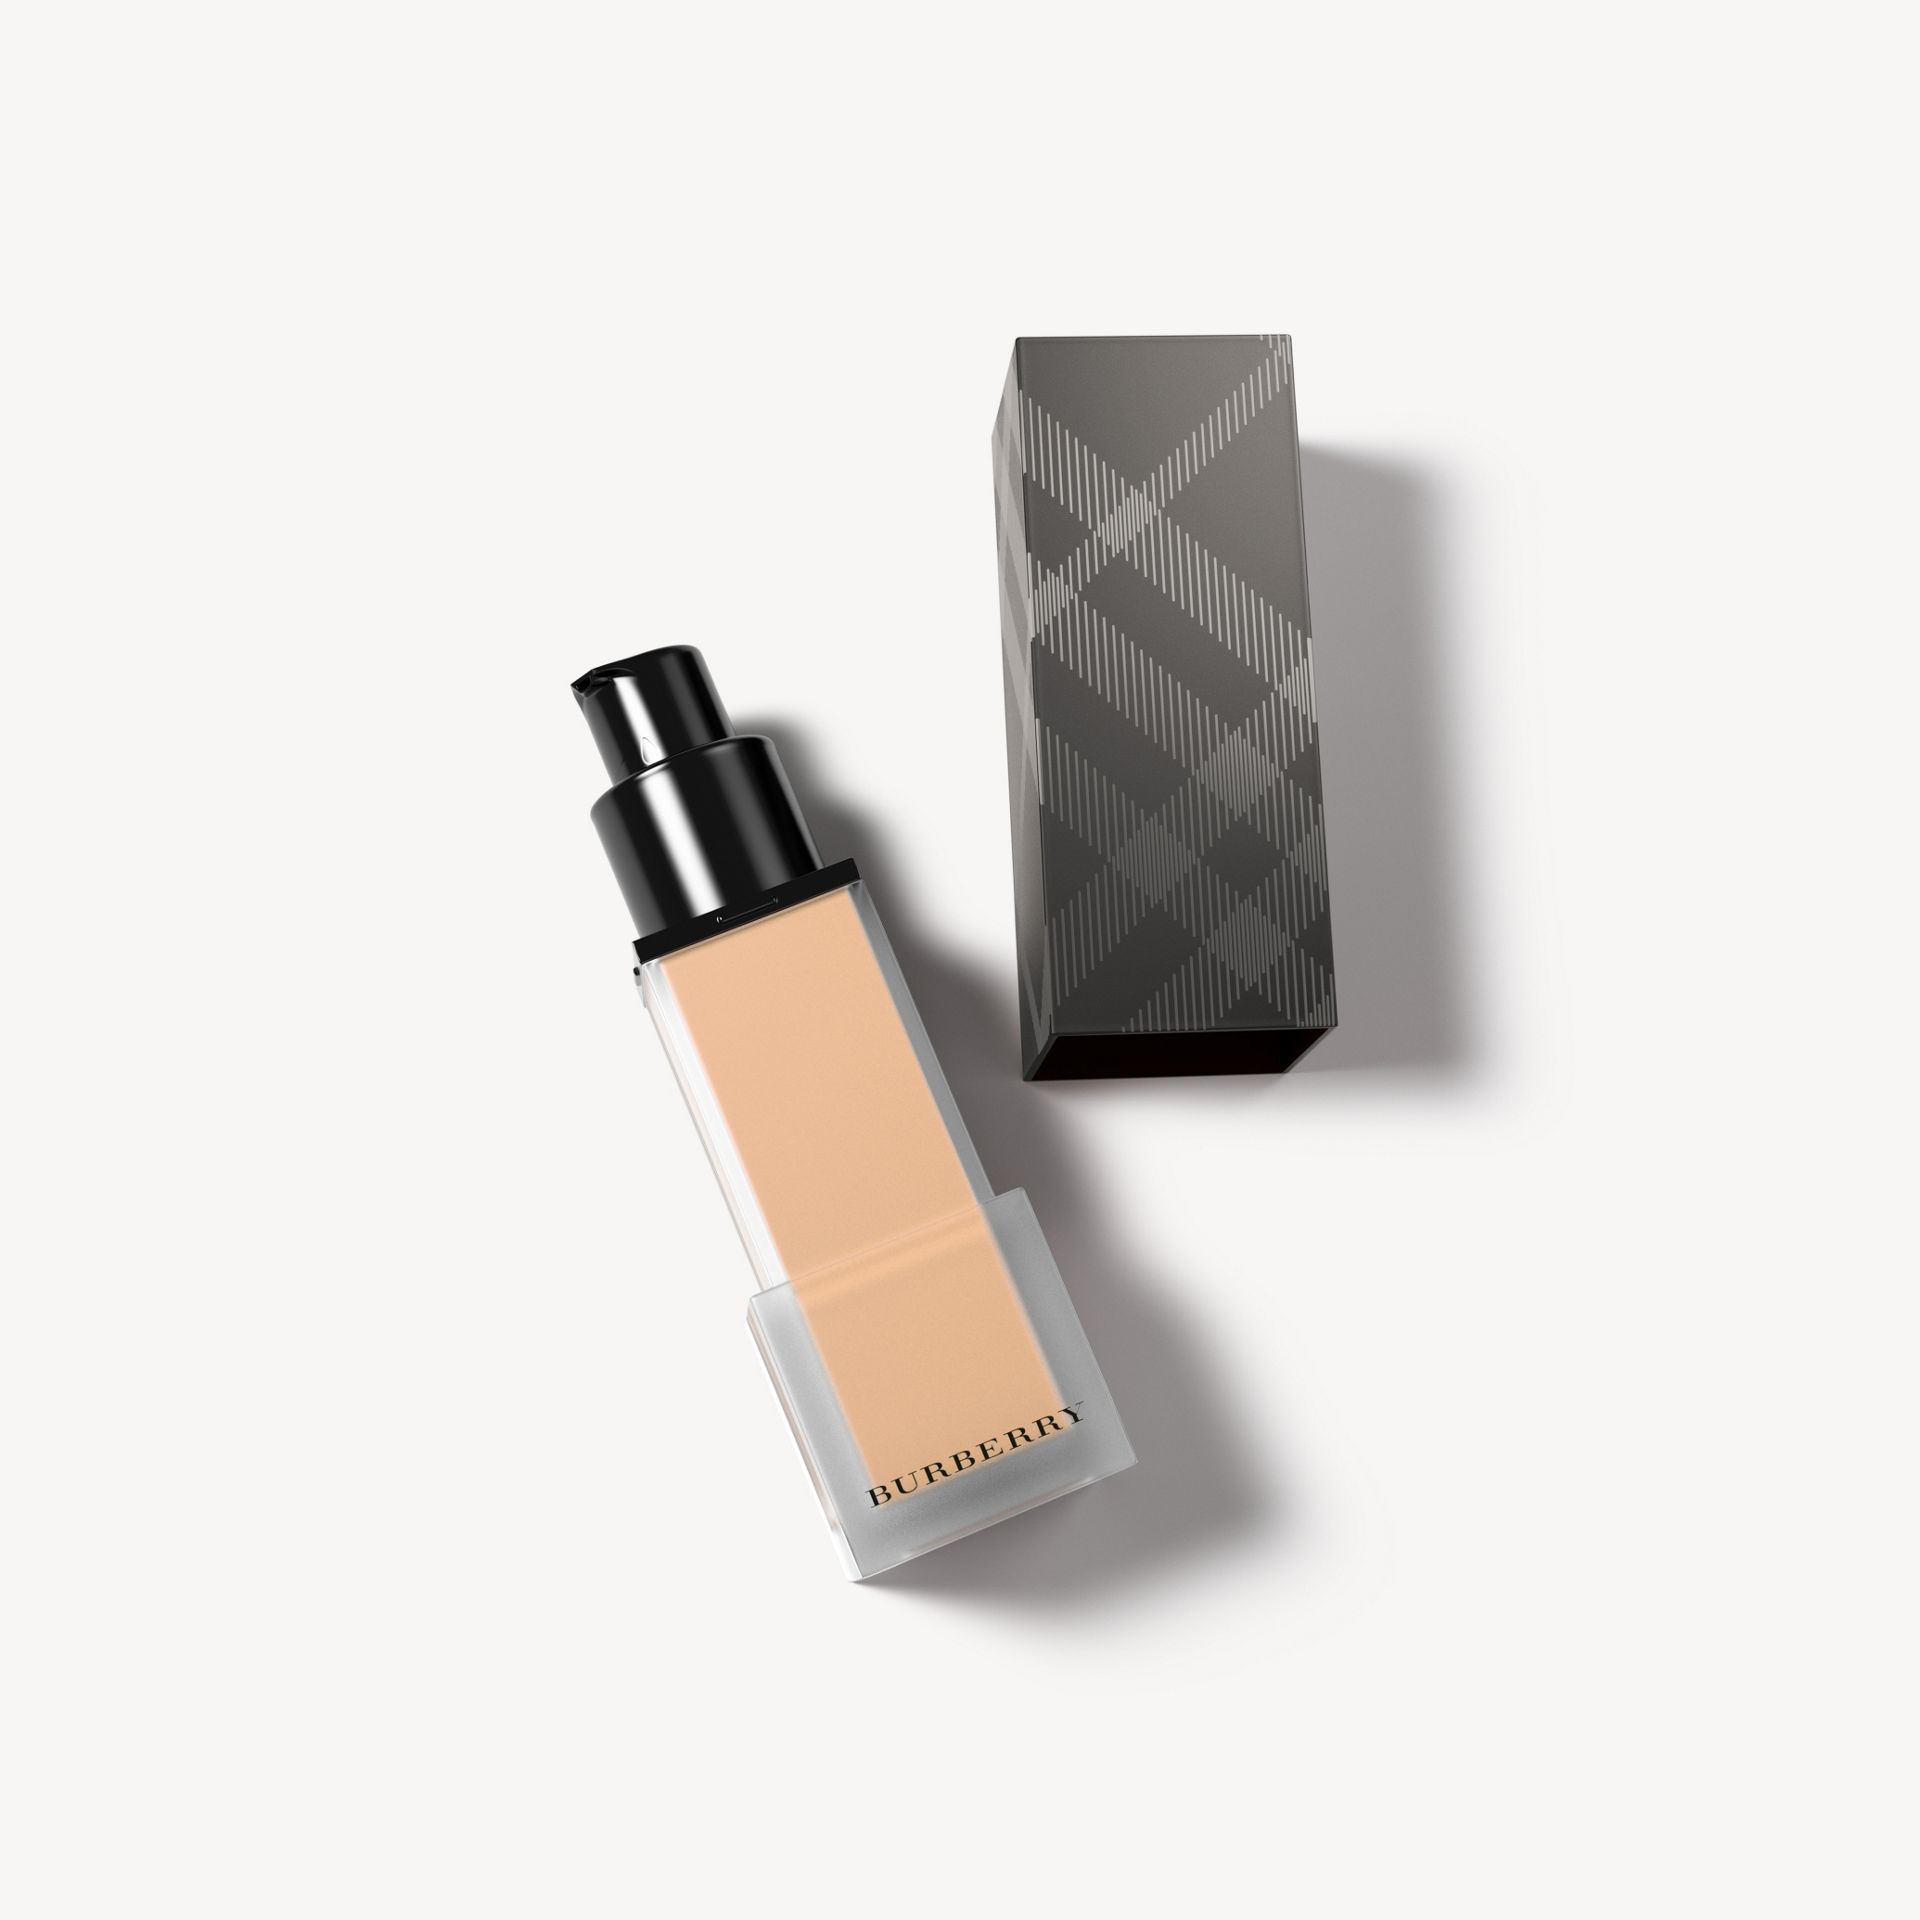 Honey 32 Base Burberry Cashmere SPF 20 – Honey No.32 - galeria de imagens 1